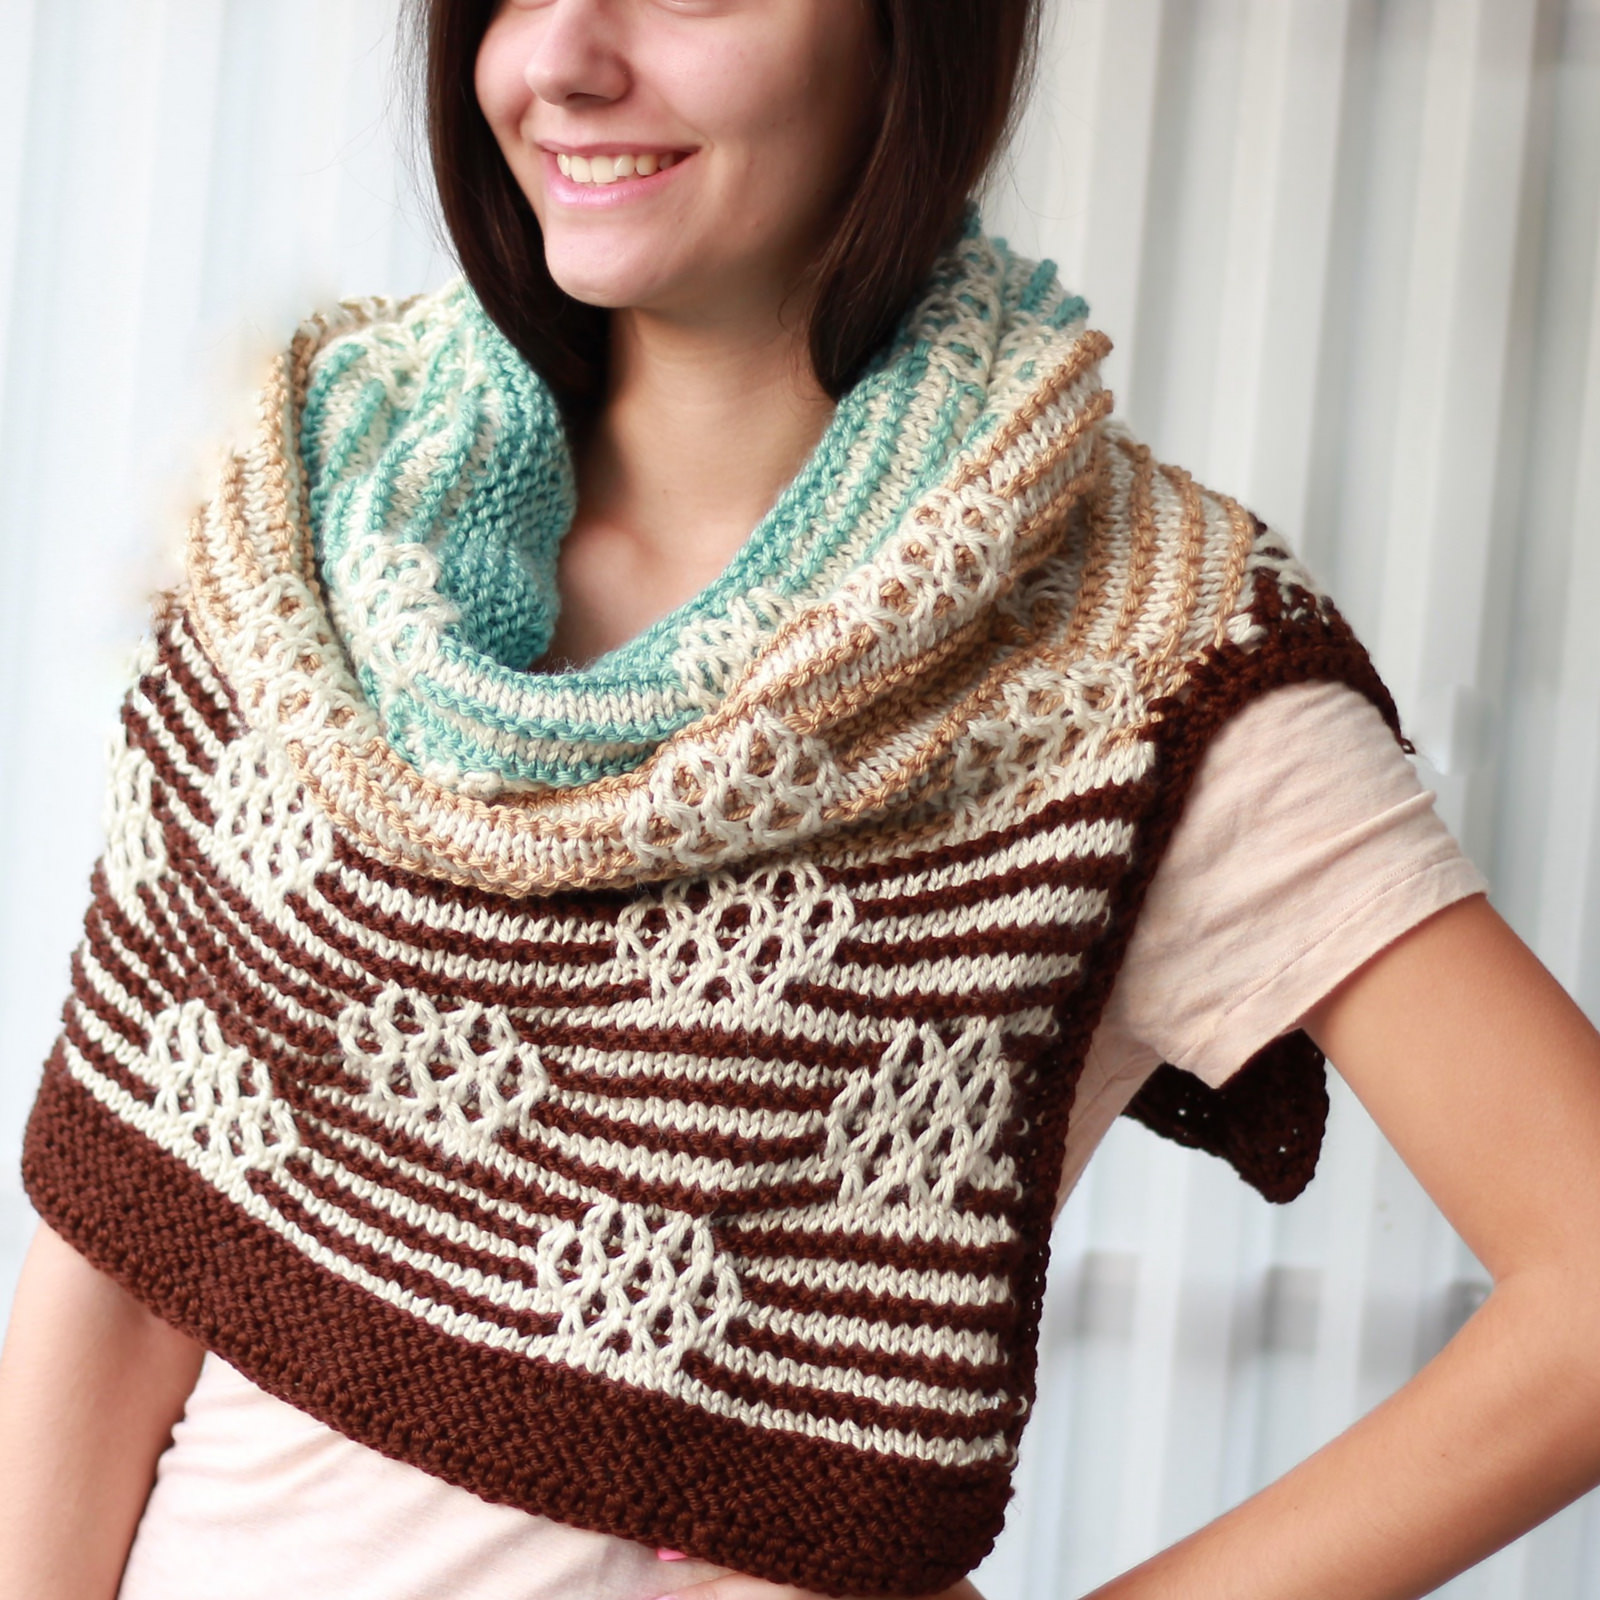 Serenity / hooded cowl - KNITTING PATTERN - The Easy Design